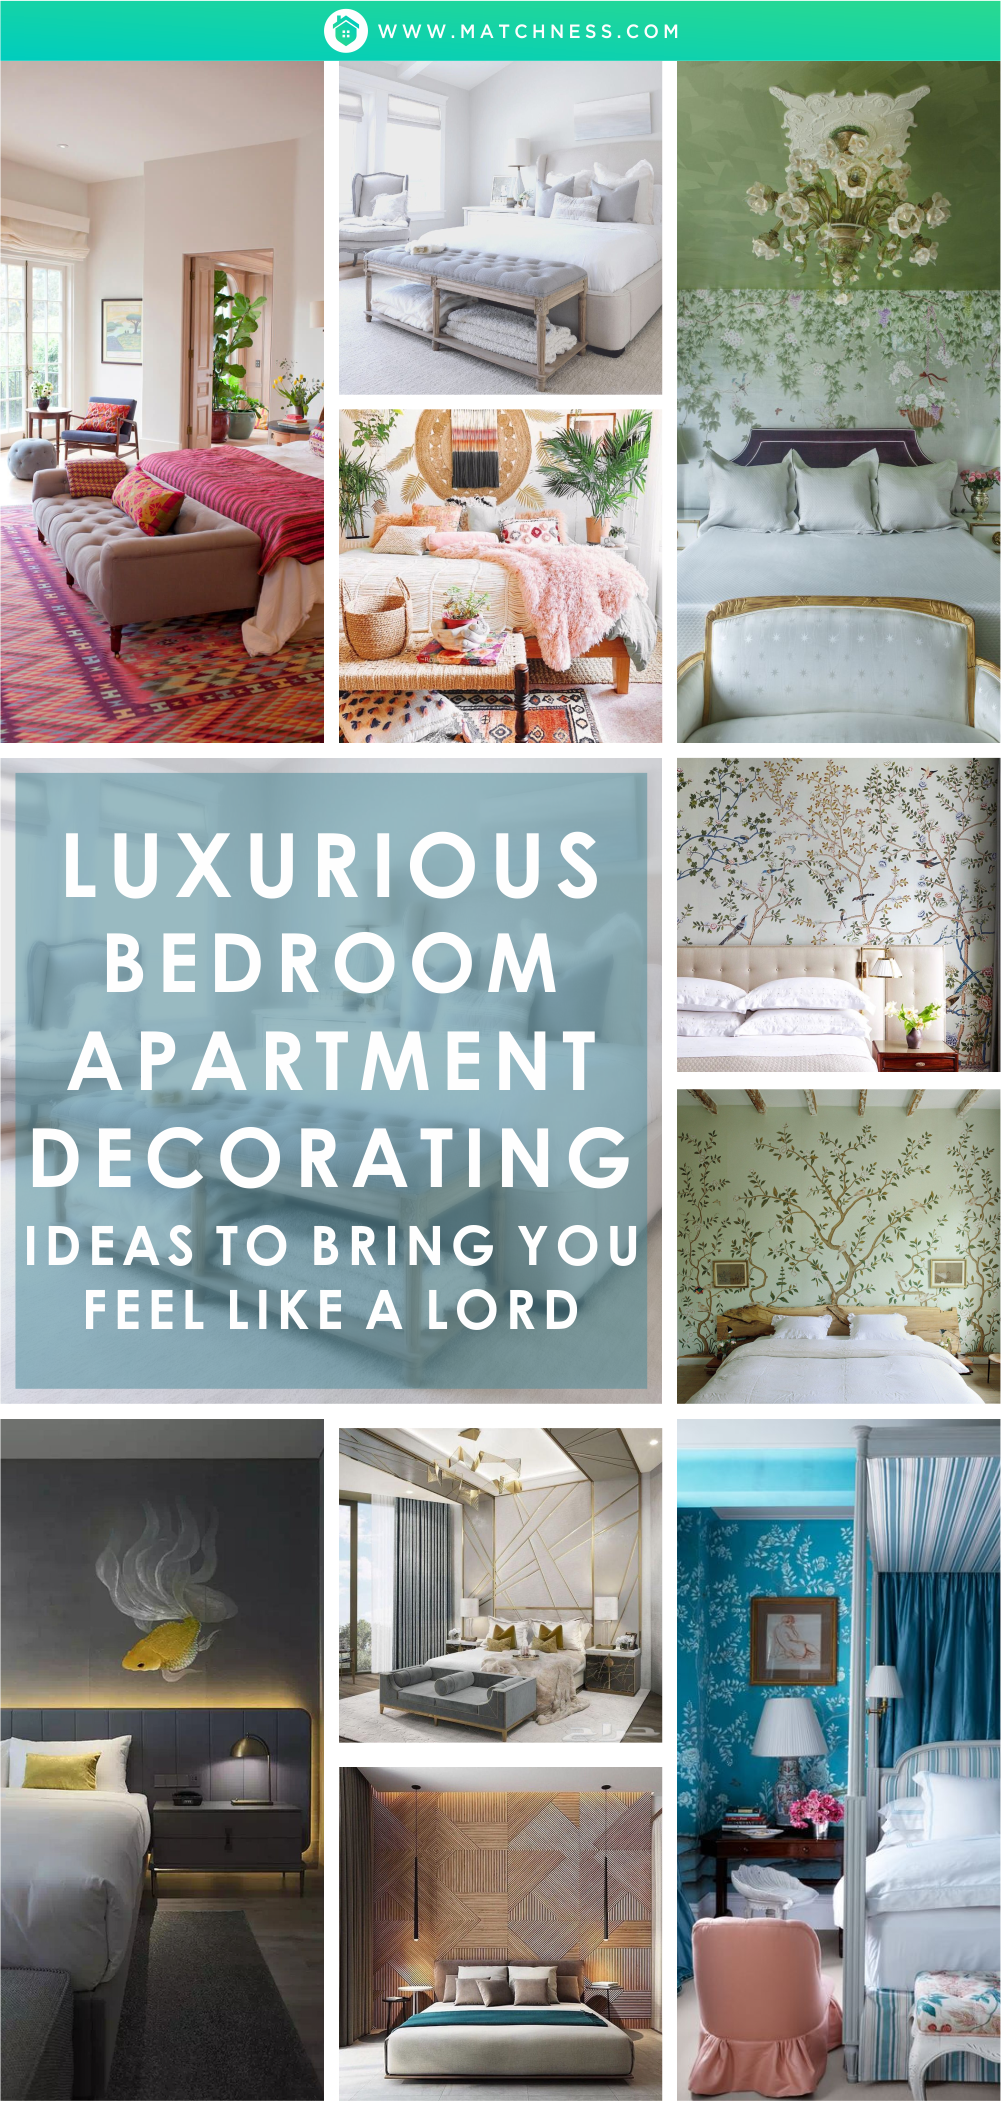 Luxurious-bedroom-apartment-decorating-ideas-to-bring-you-feel-like-a-lord-1